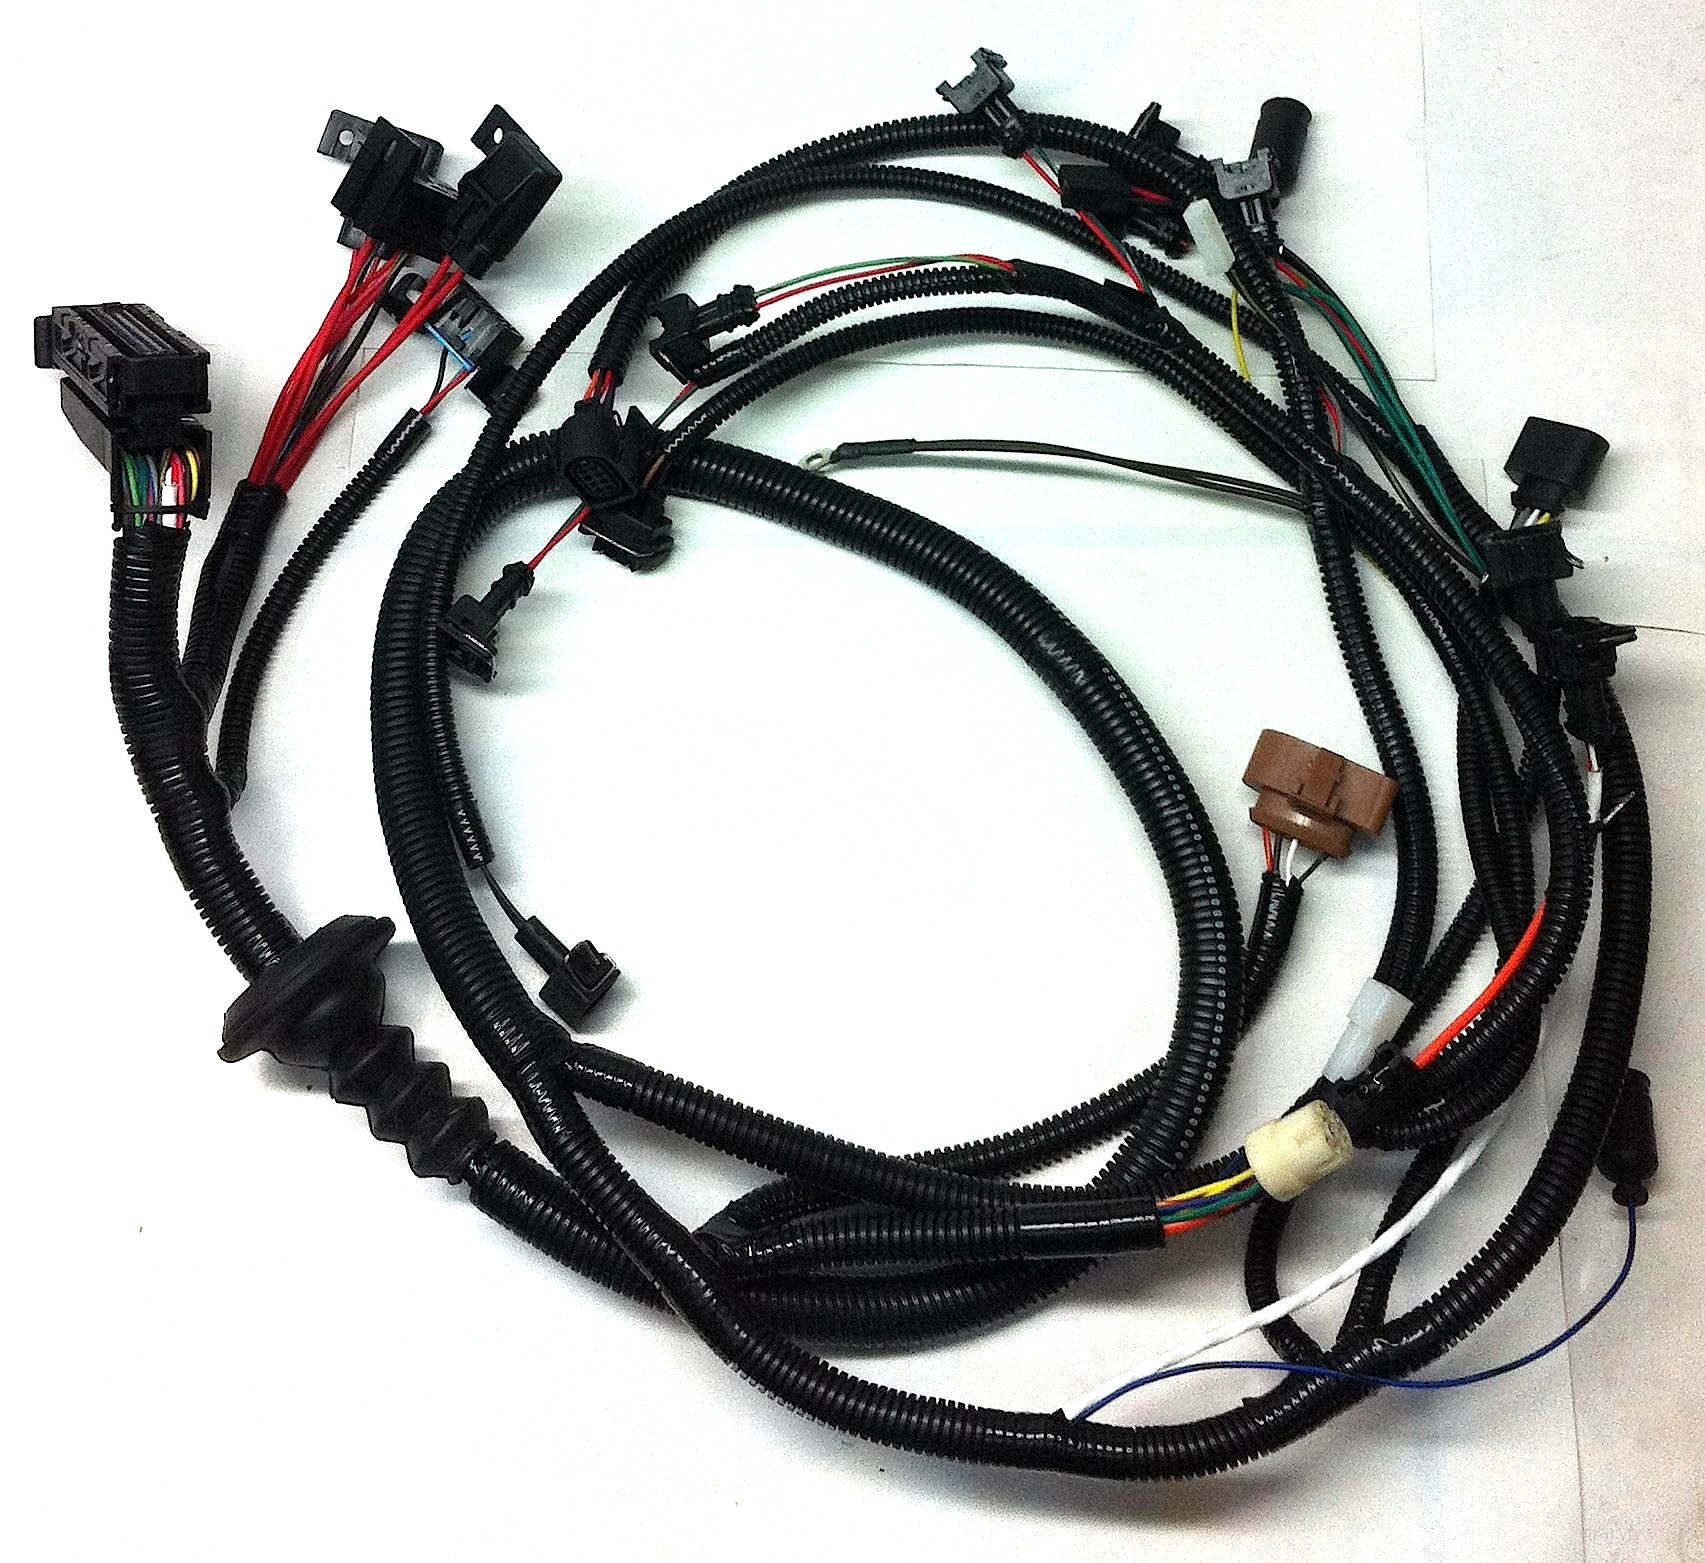 Wiring_Harness_2LR 2lr tiico conversion wiring harness foreign auto & supply, inc what is a car wiring harness at gsmx.co